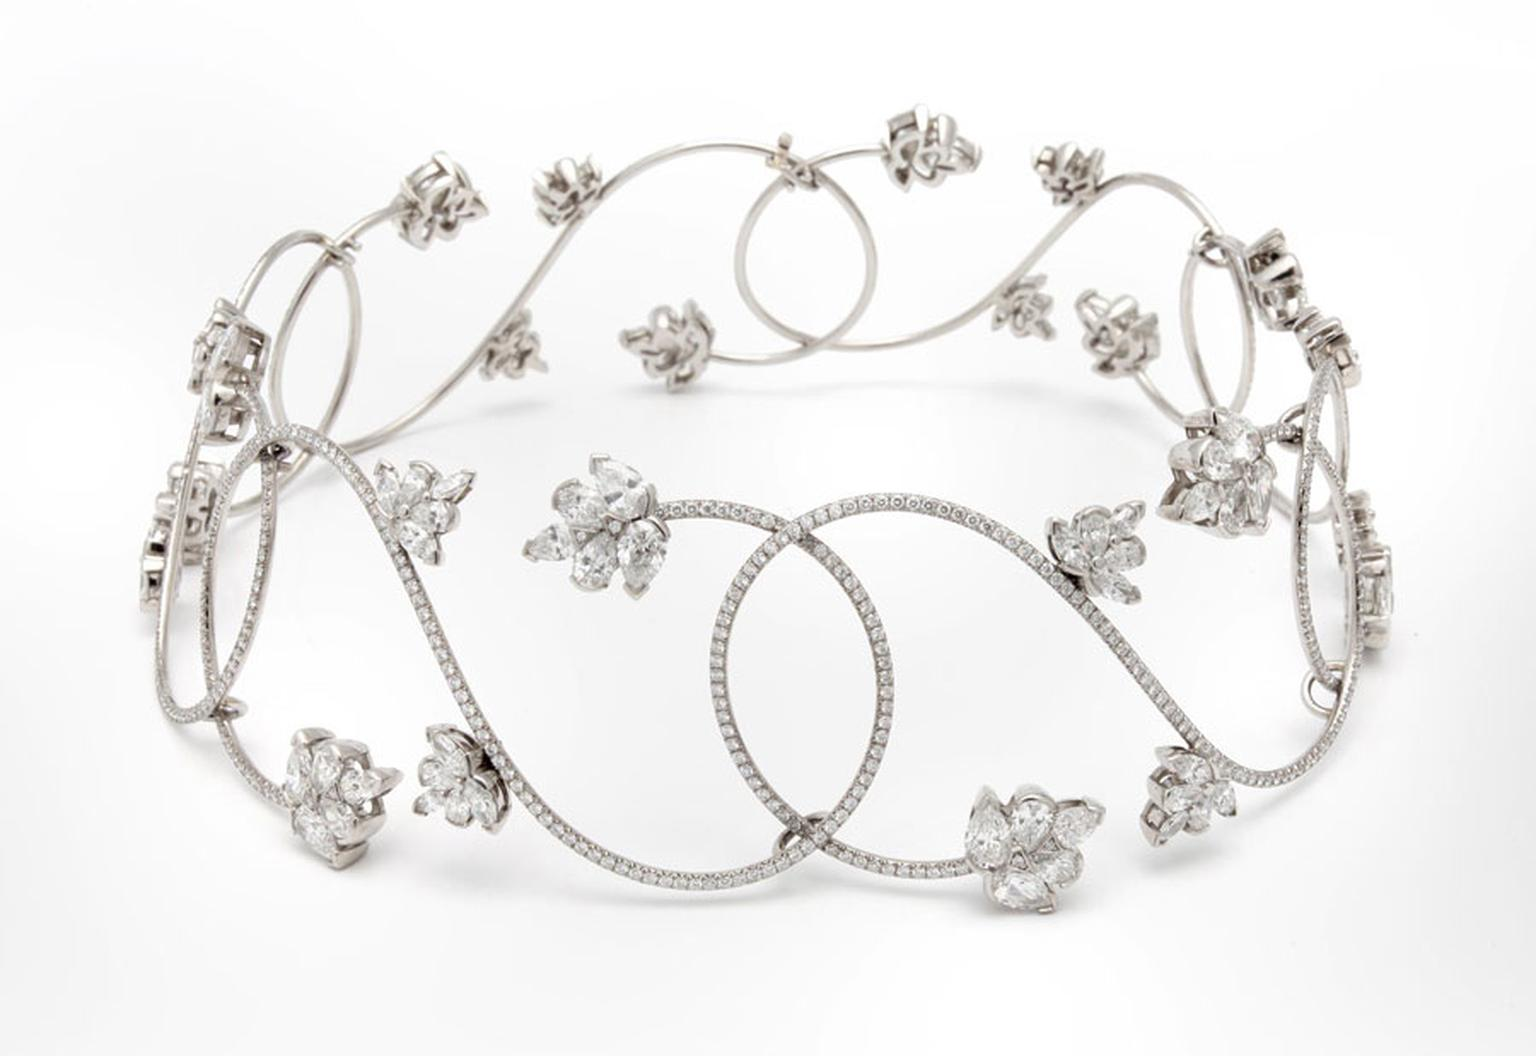 Argyle-A-sensuous-choker-set-in-platinum--with-a-delicate-flower-design-enhanced-by-25tc-tw-diamonds